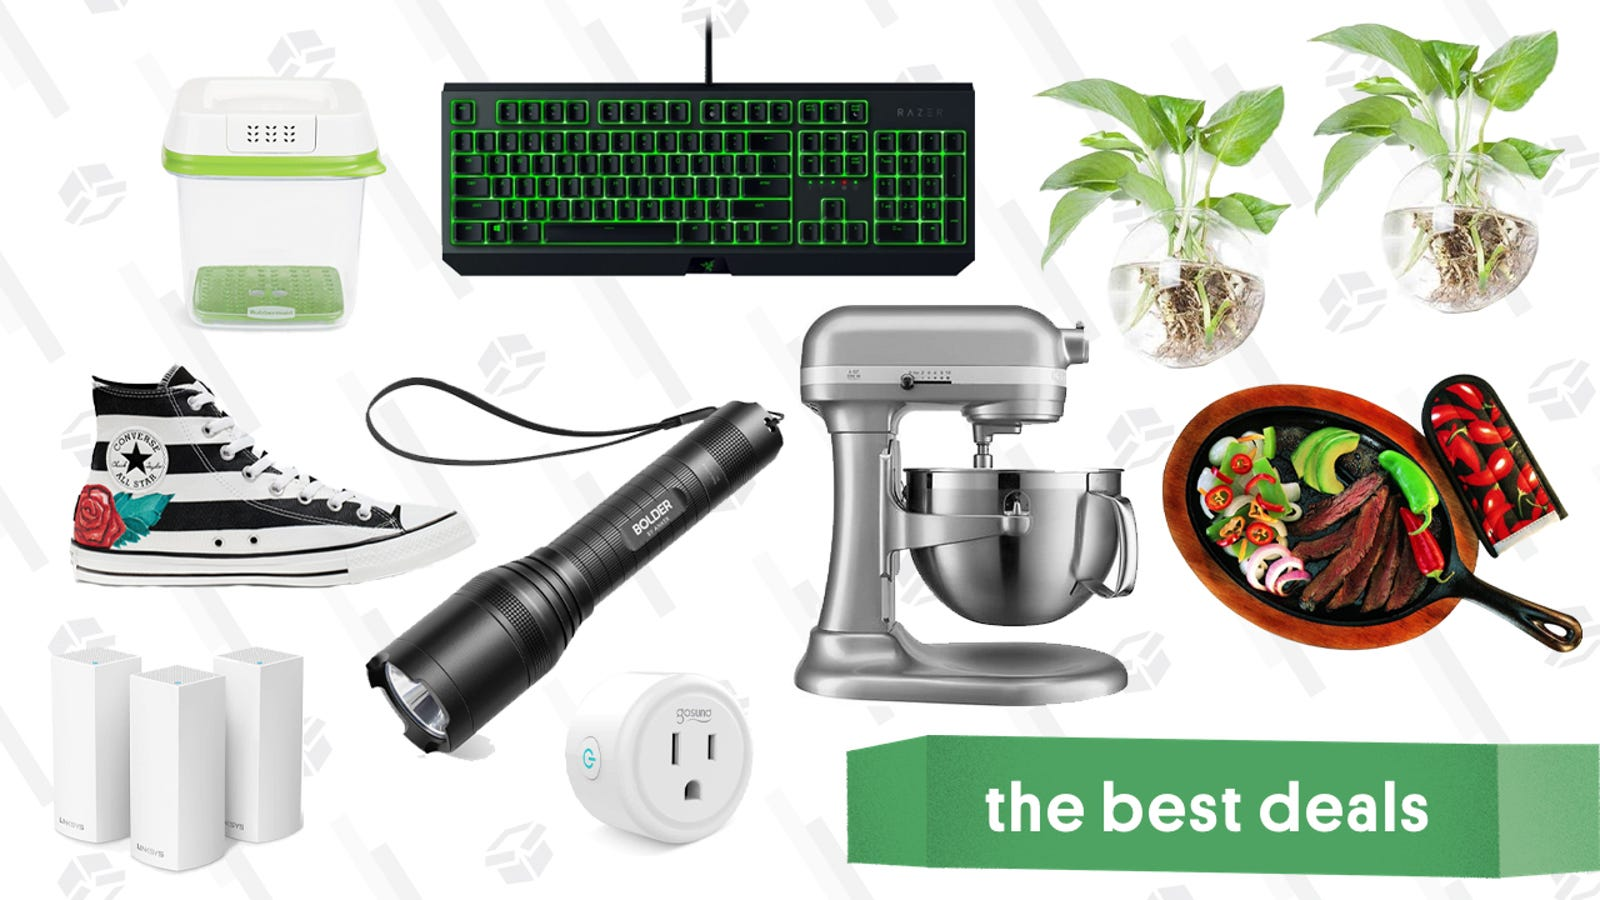 Wednesday's Best Deals: Razer Keyboard, Linksys Gold Box, Zappos Summer Sale, and More